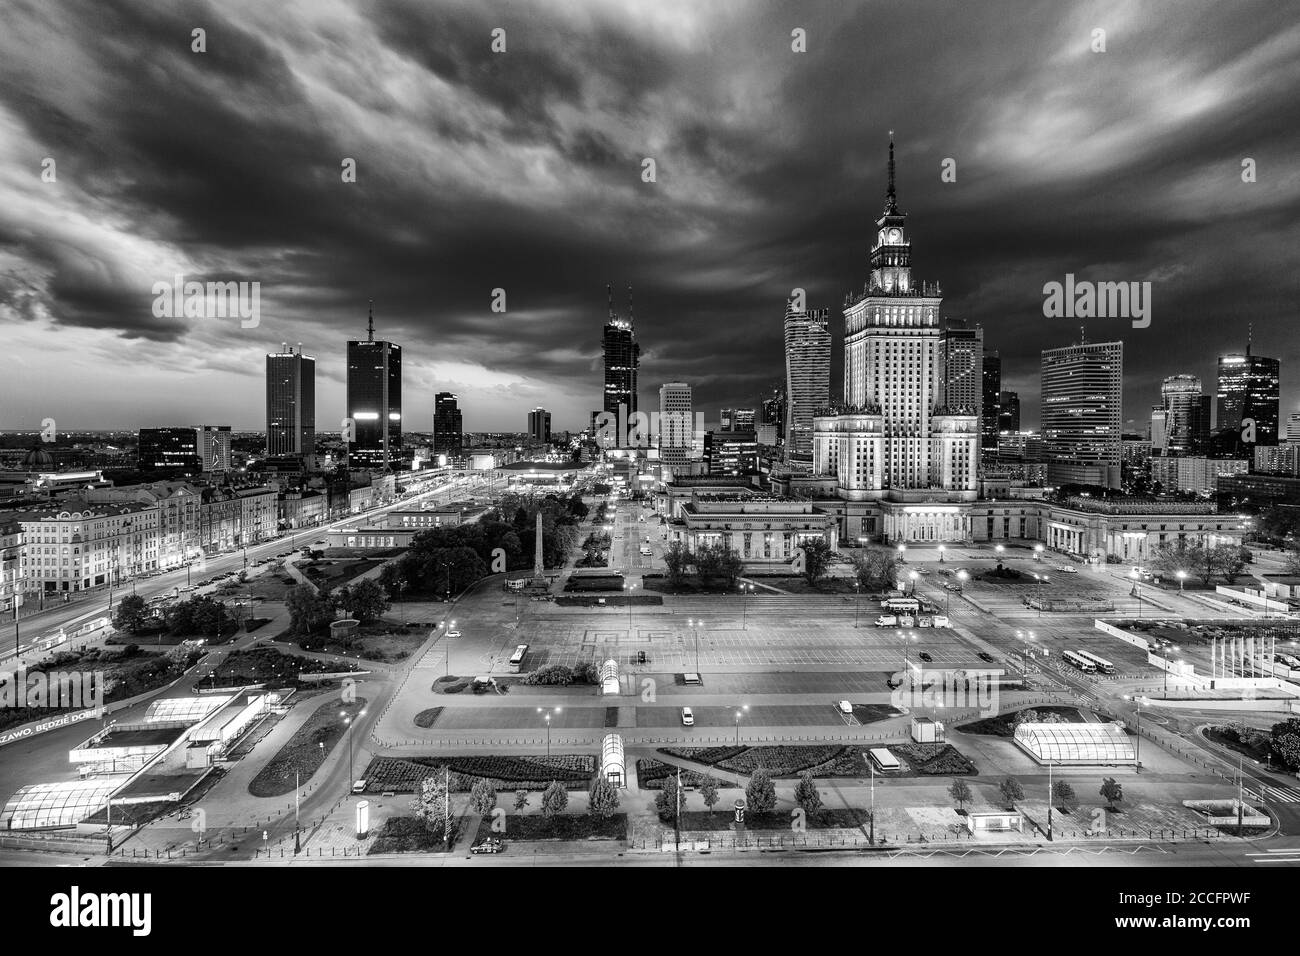 Europa, Poland, Voivodeship Masovian, Warsaw - the capital and largest city of Poland - Palace of Culture and Science Stock Photo